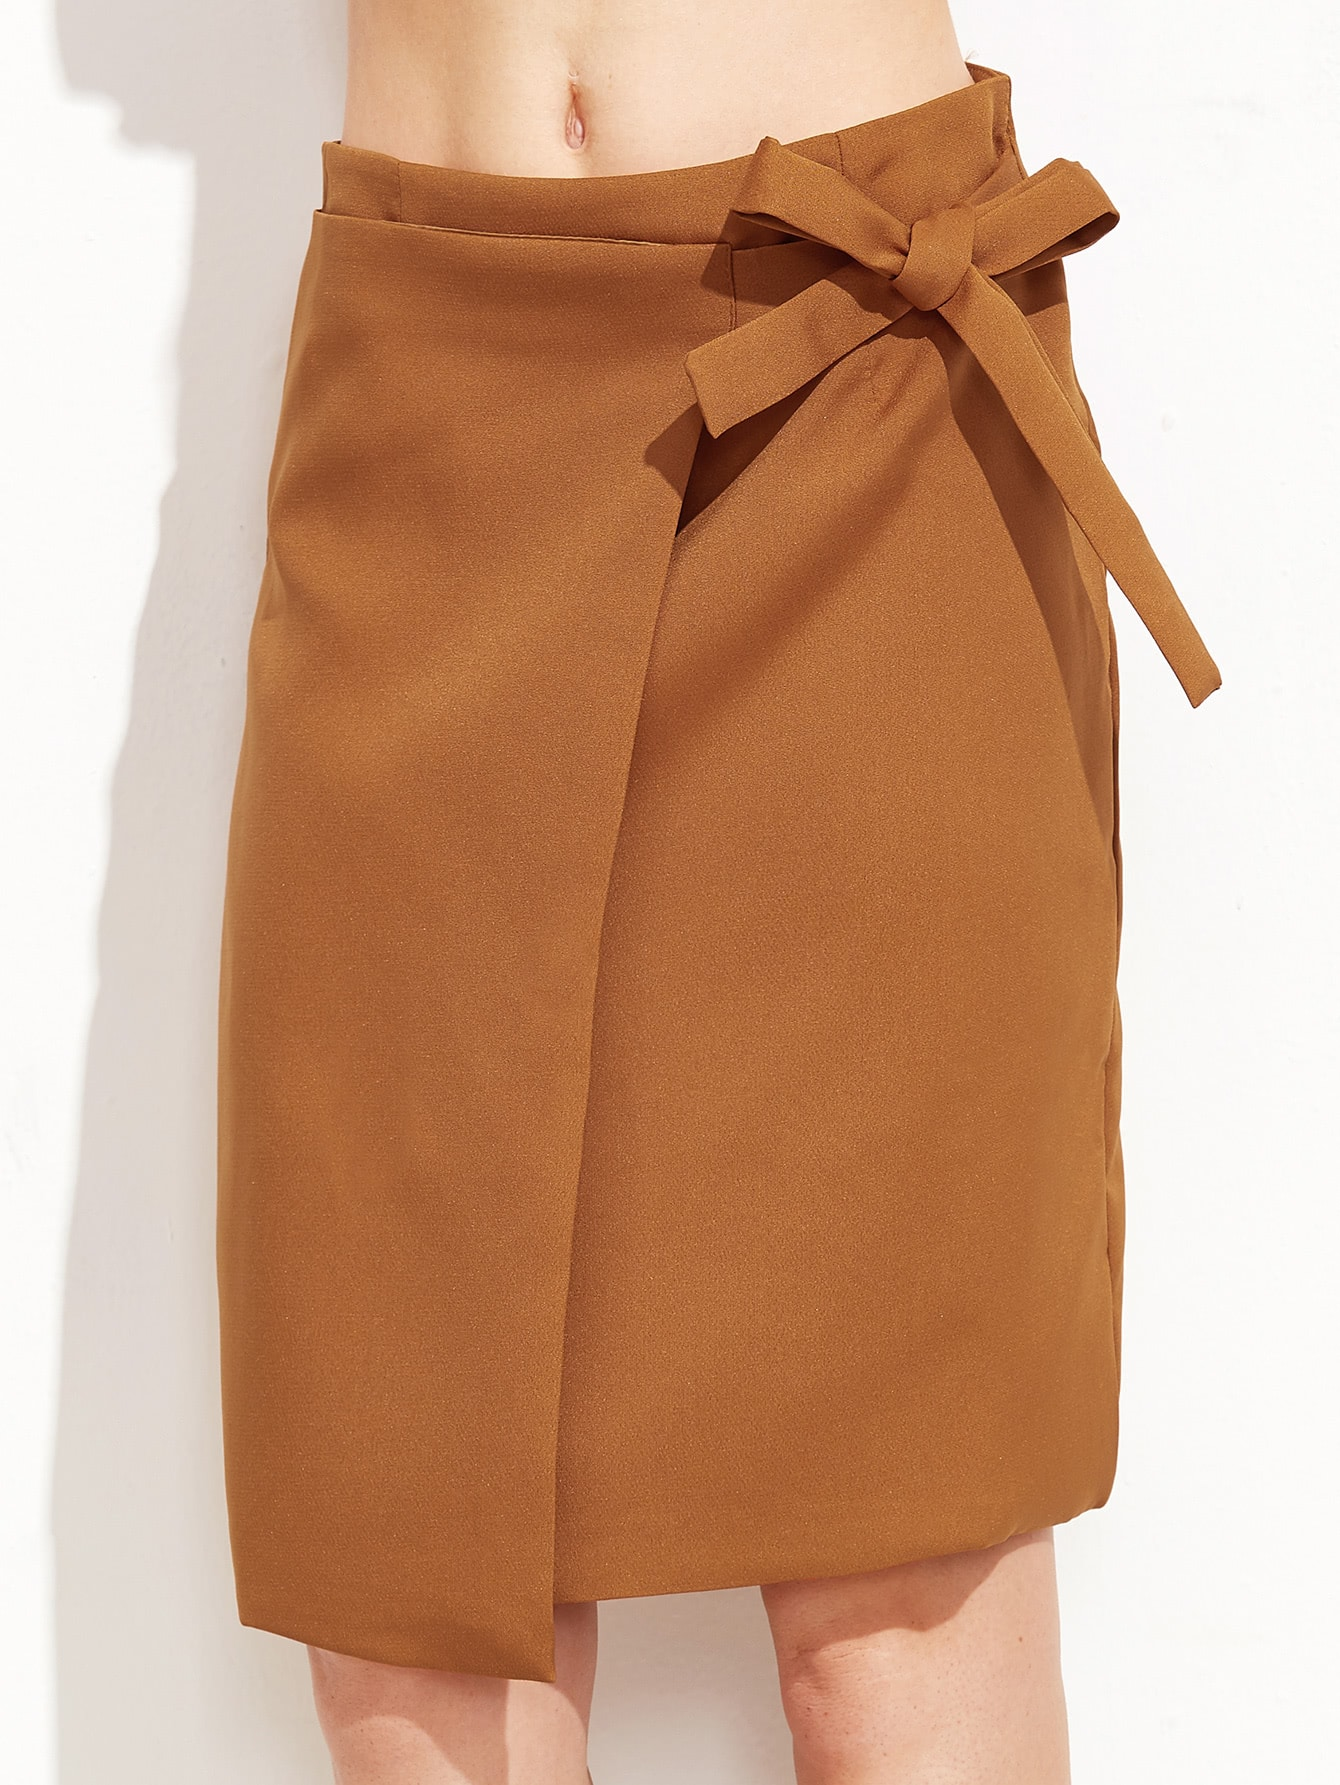 Khaki Bow Tie Zipper Back Skirt